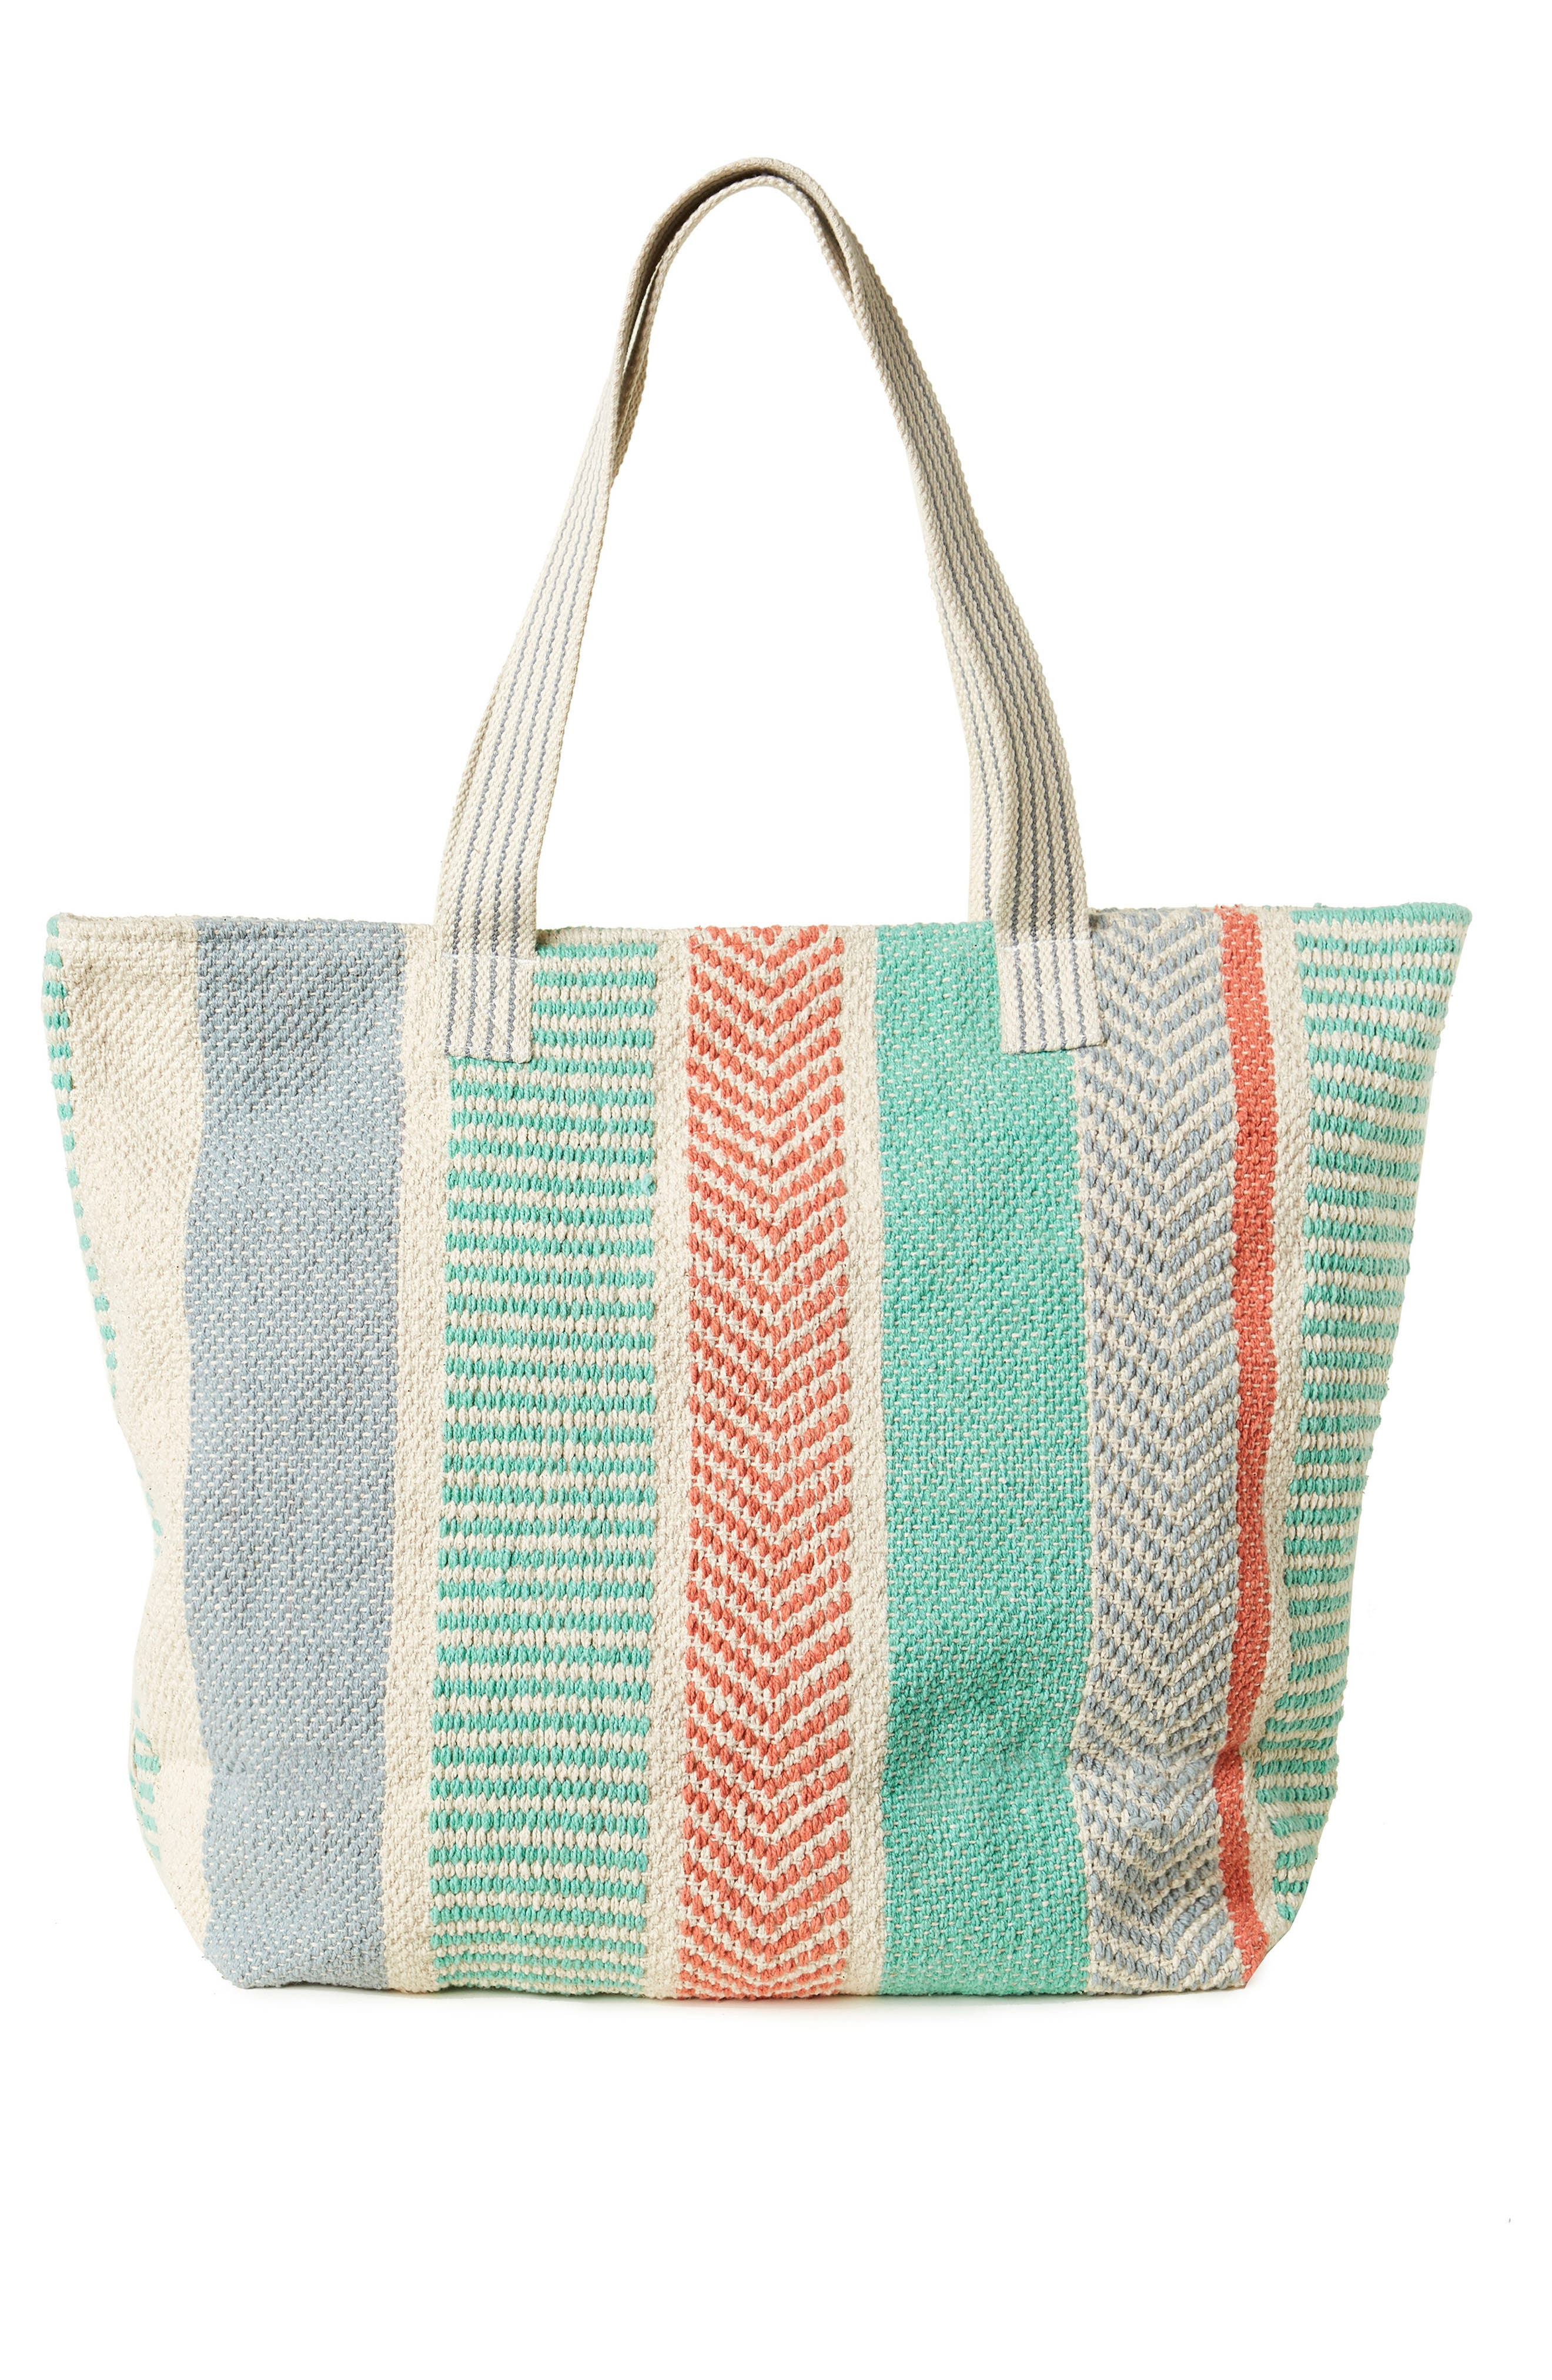 O'NEILL,                             Heatwave Tote,                             Alternate thumbnail 2, color,                             250